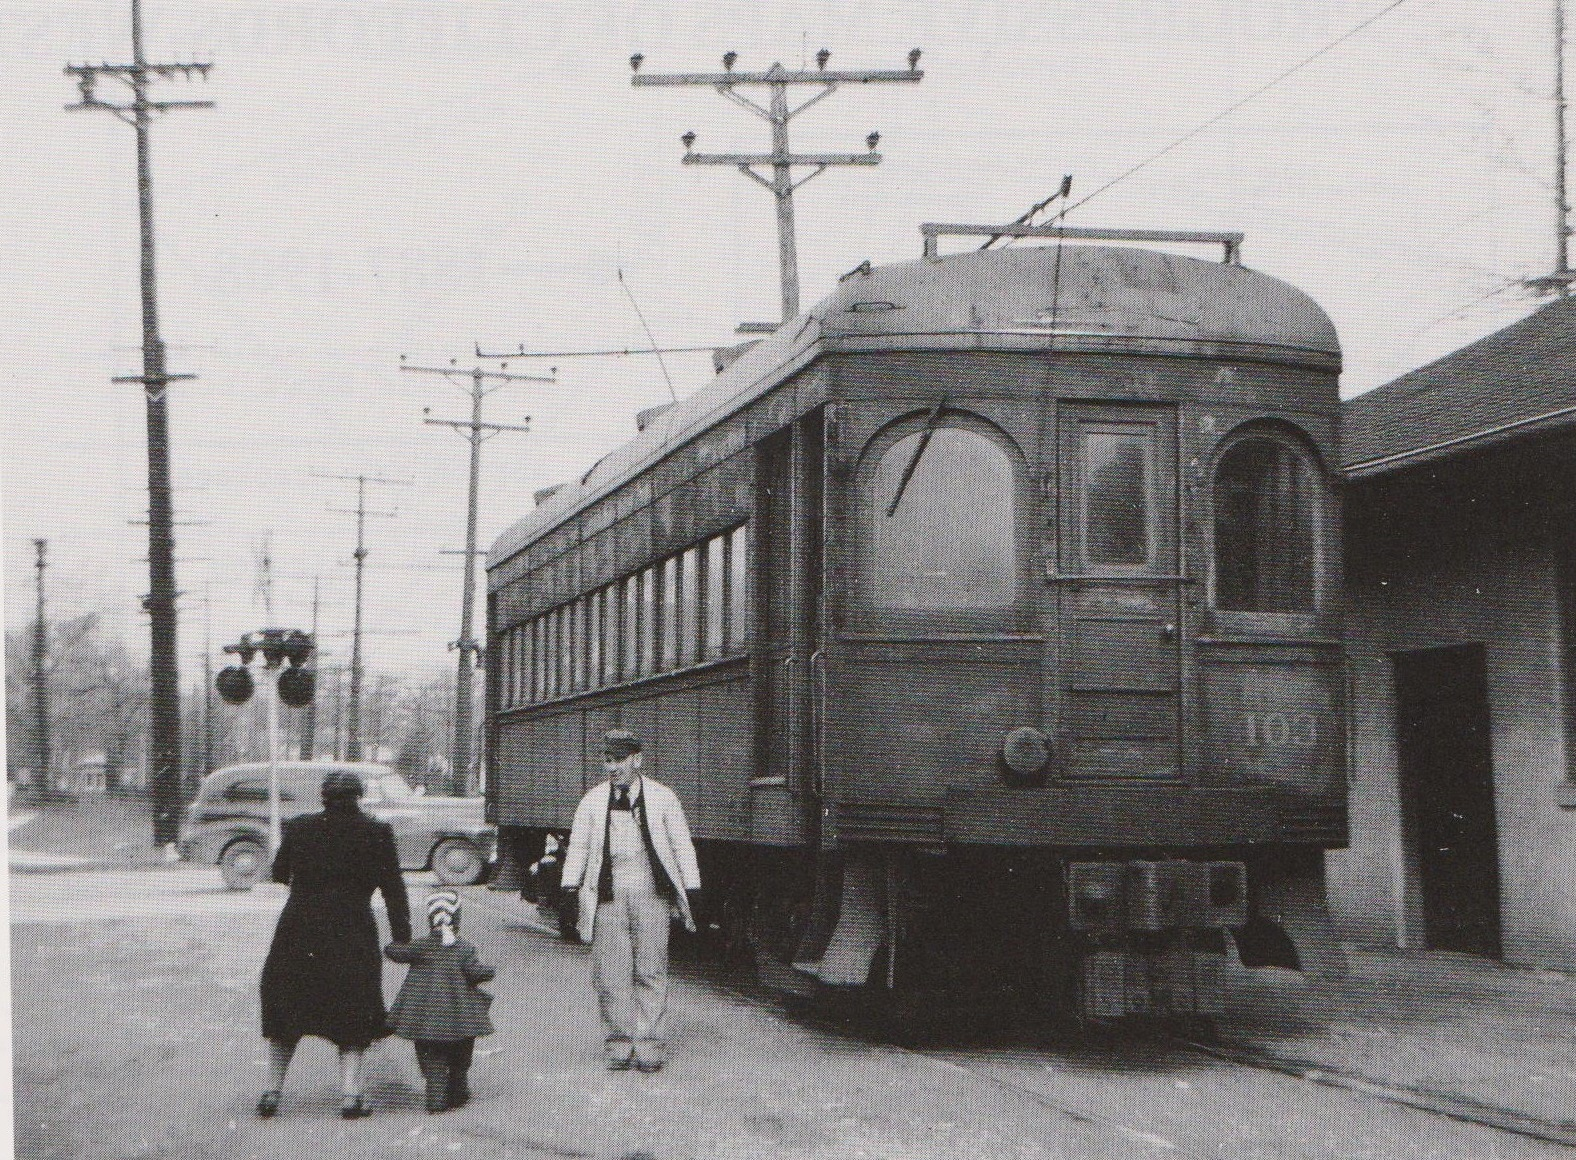 """Baltimore & Annapolis Car #103 at Glen Burnie Station the day before the line was abandoned. Glen Burnie, Maryland Date: February 4, 1950. Source: R.W. Janssen from """"Baltimore Light Rail, Then & Now"""" by Herbert H. Harwood Jr."""